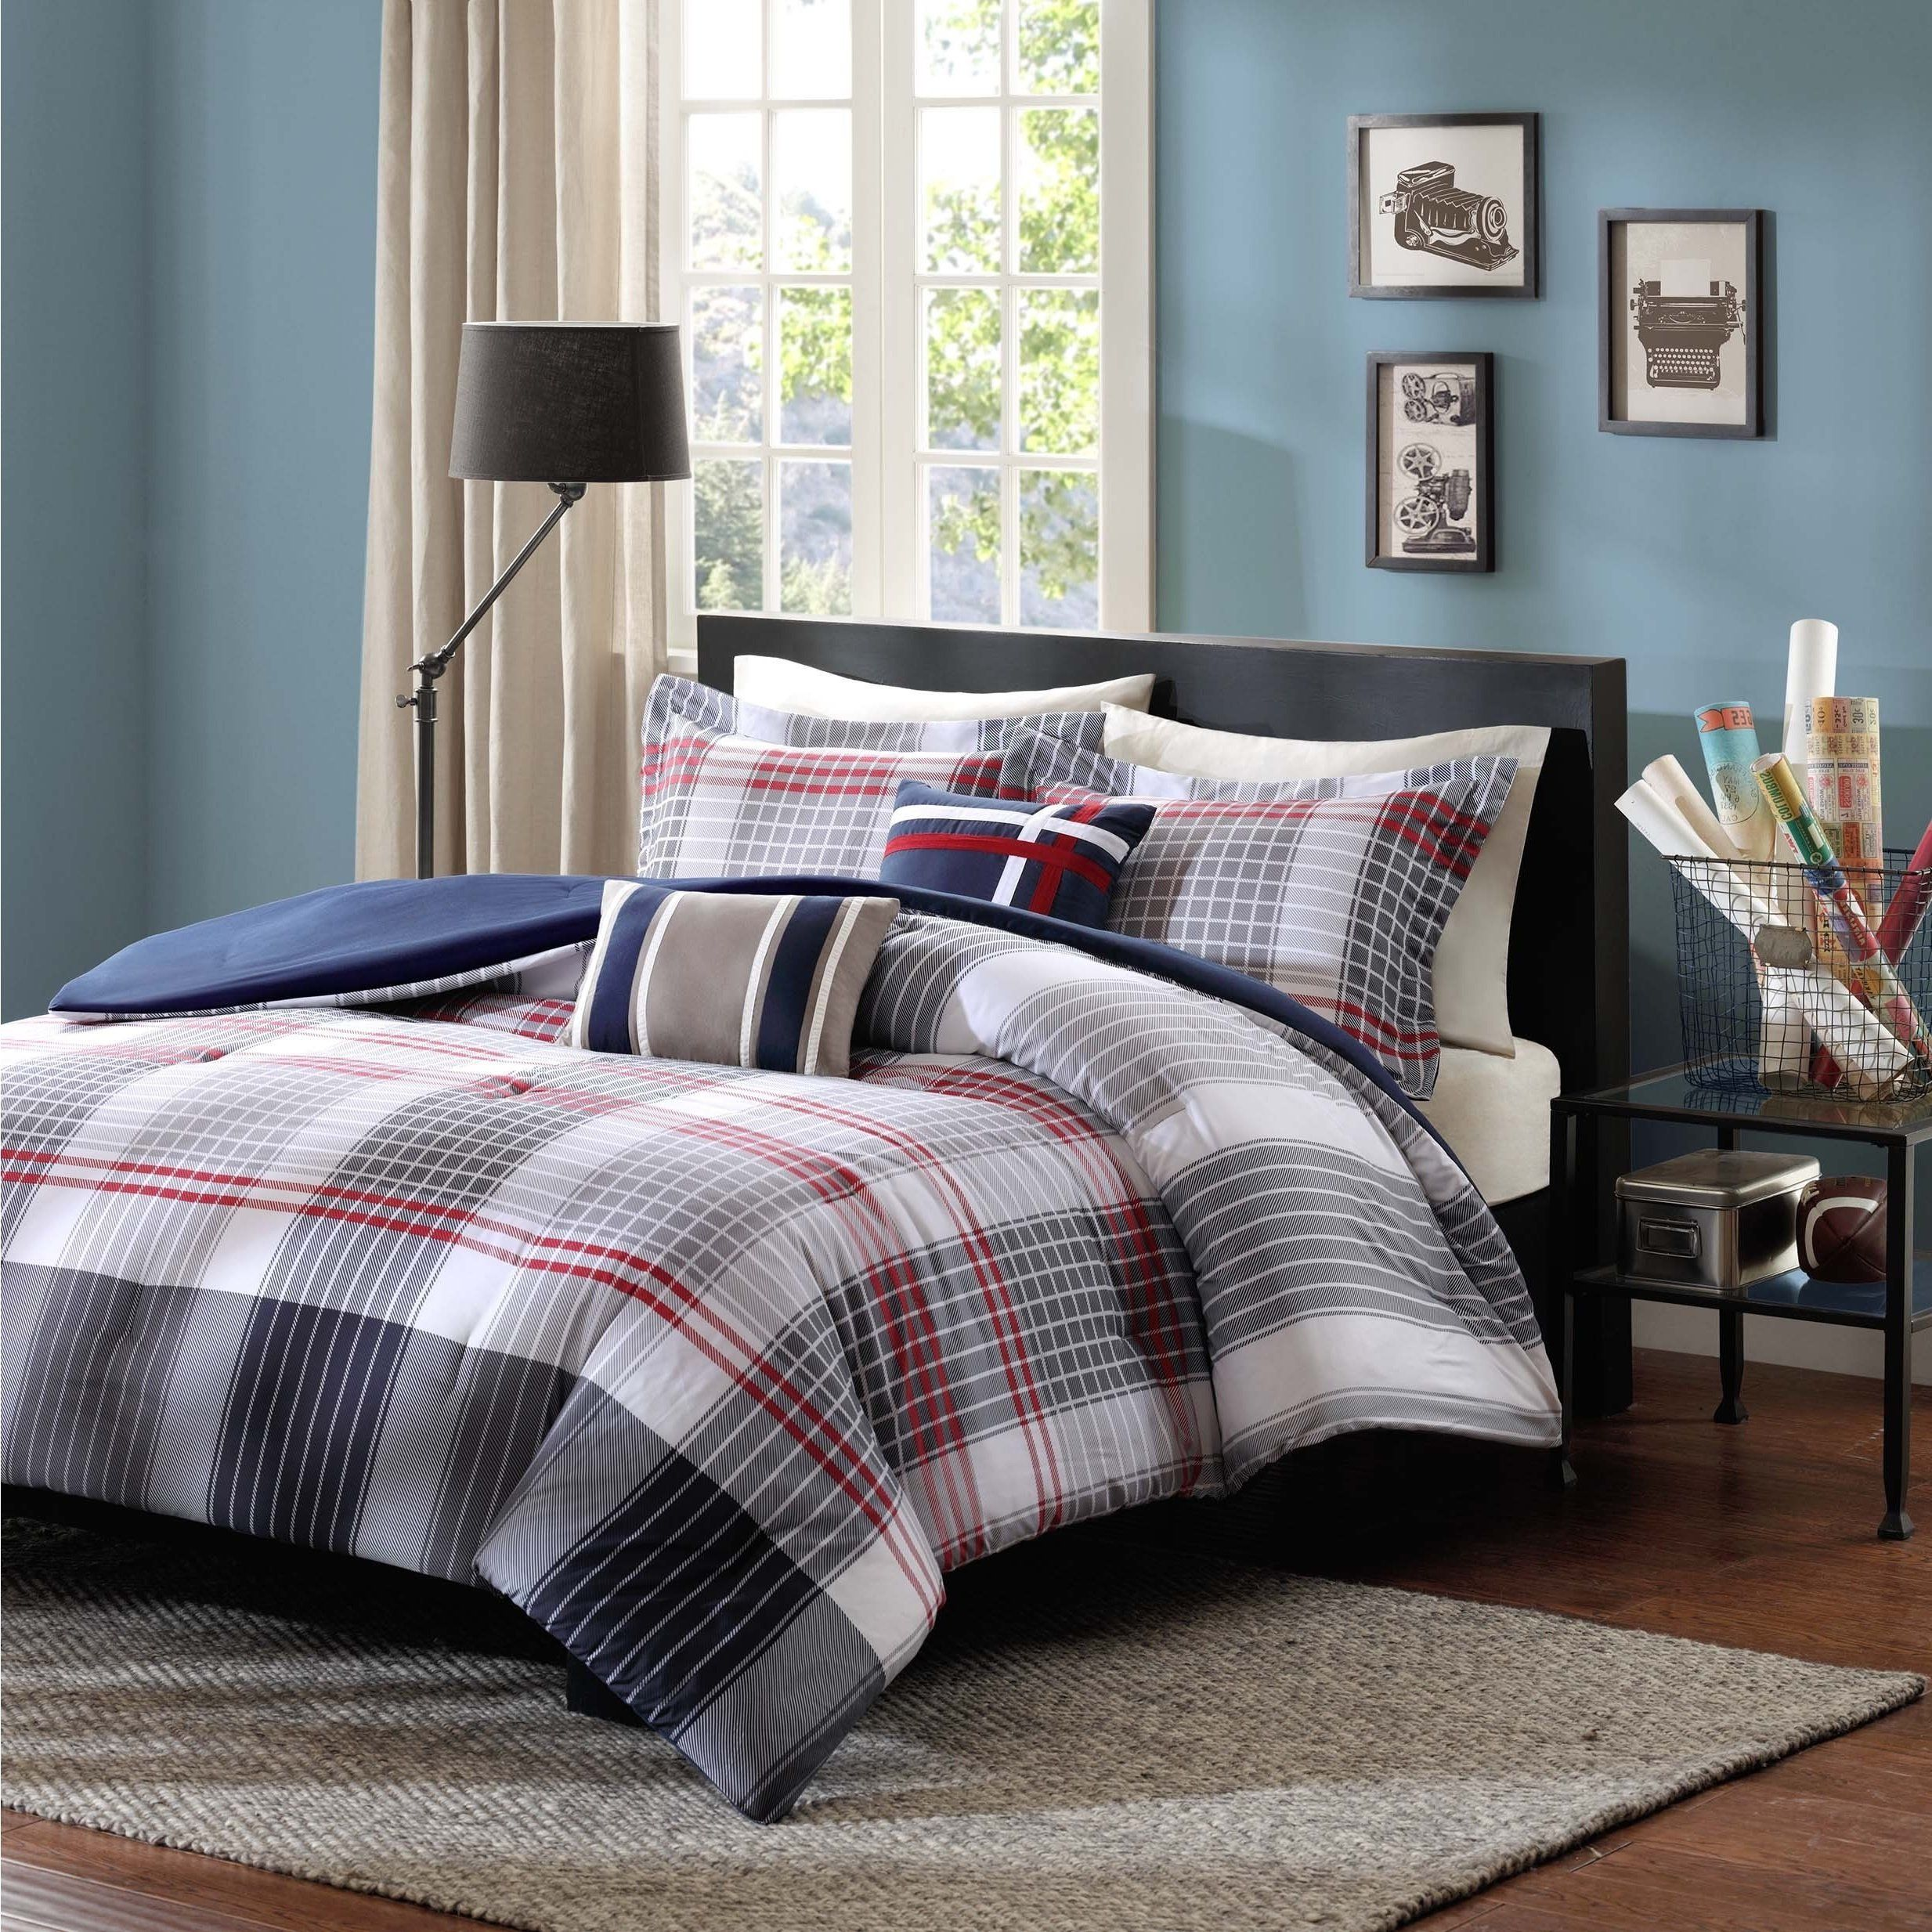 com gray discoverchrysalis comforter photo walmart x and red of black set corell sets piece bedding